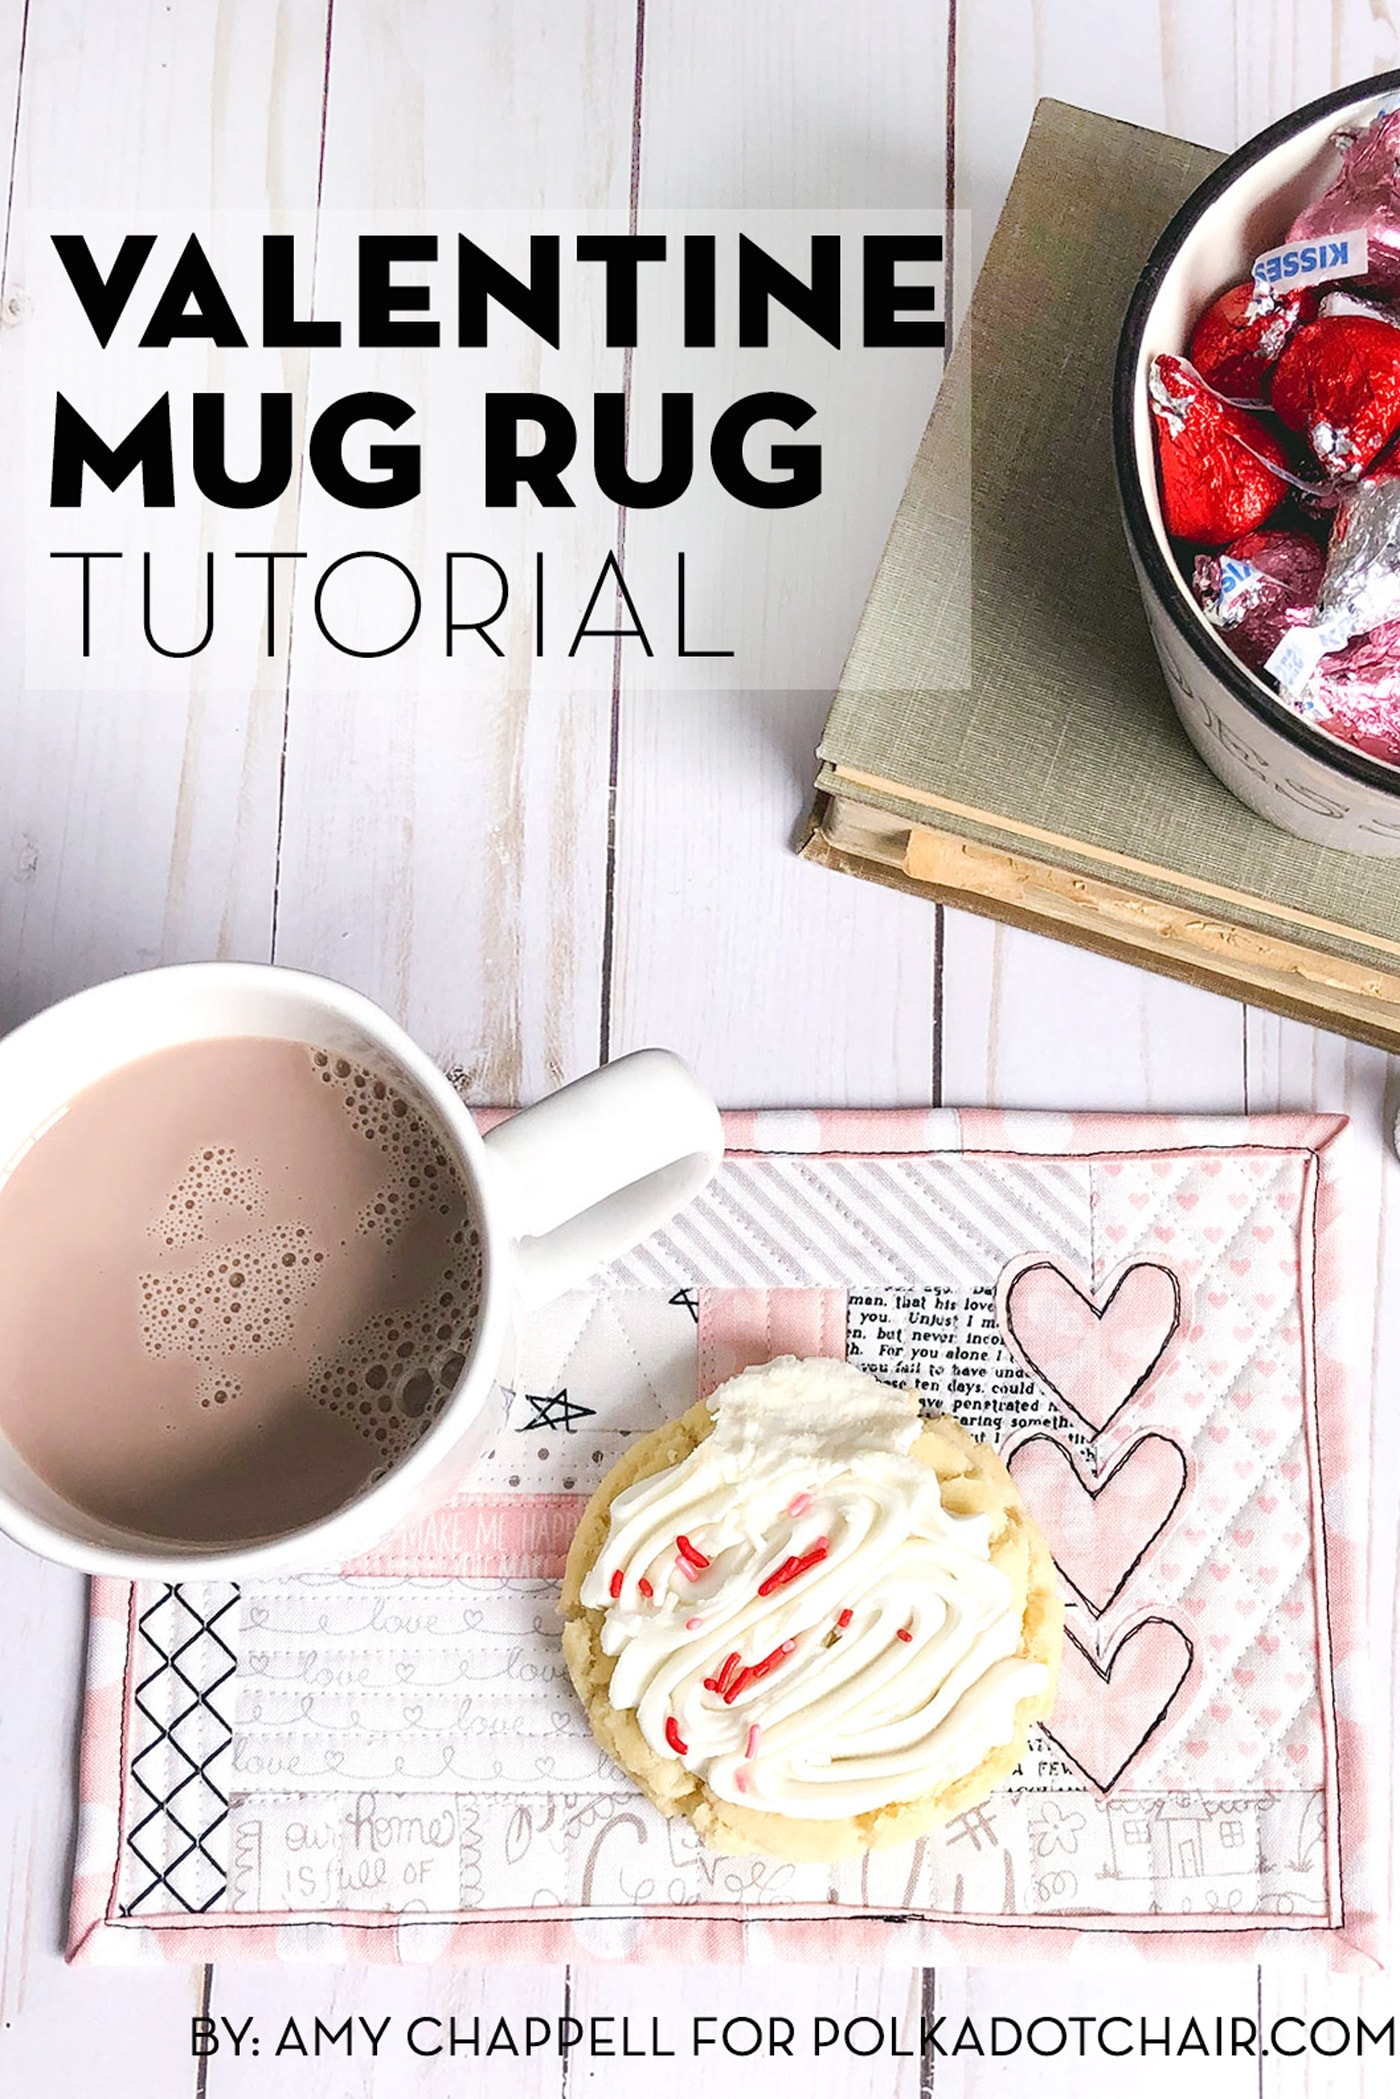 How To Make A Mug Rug Using Quilt As You Go Method Polka Dot Chair